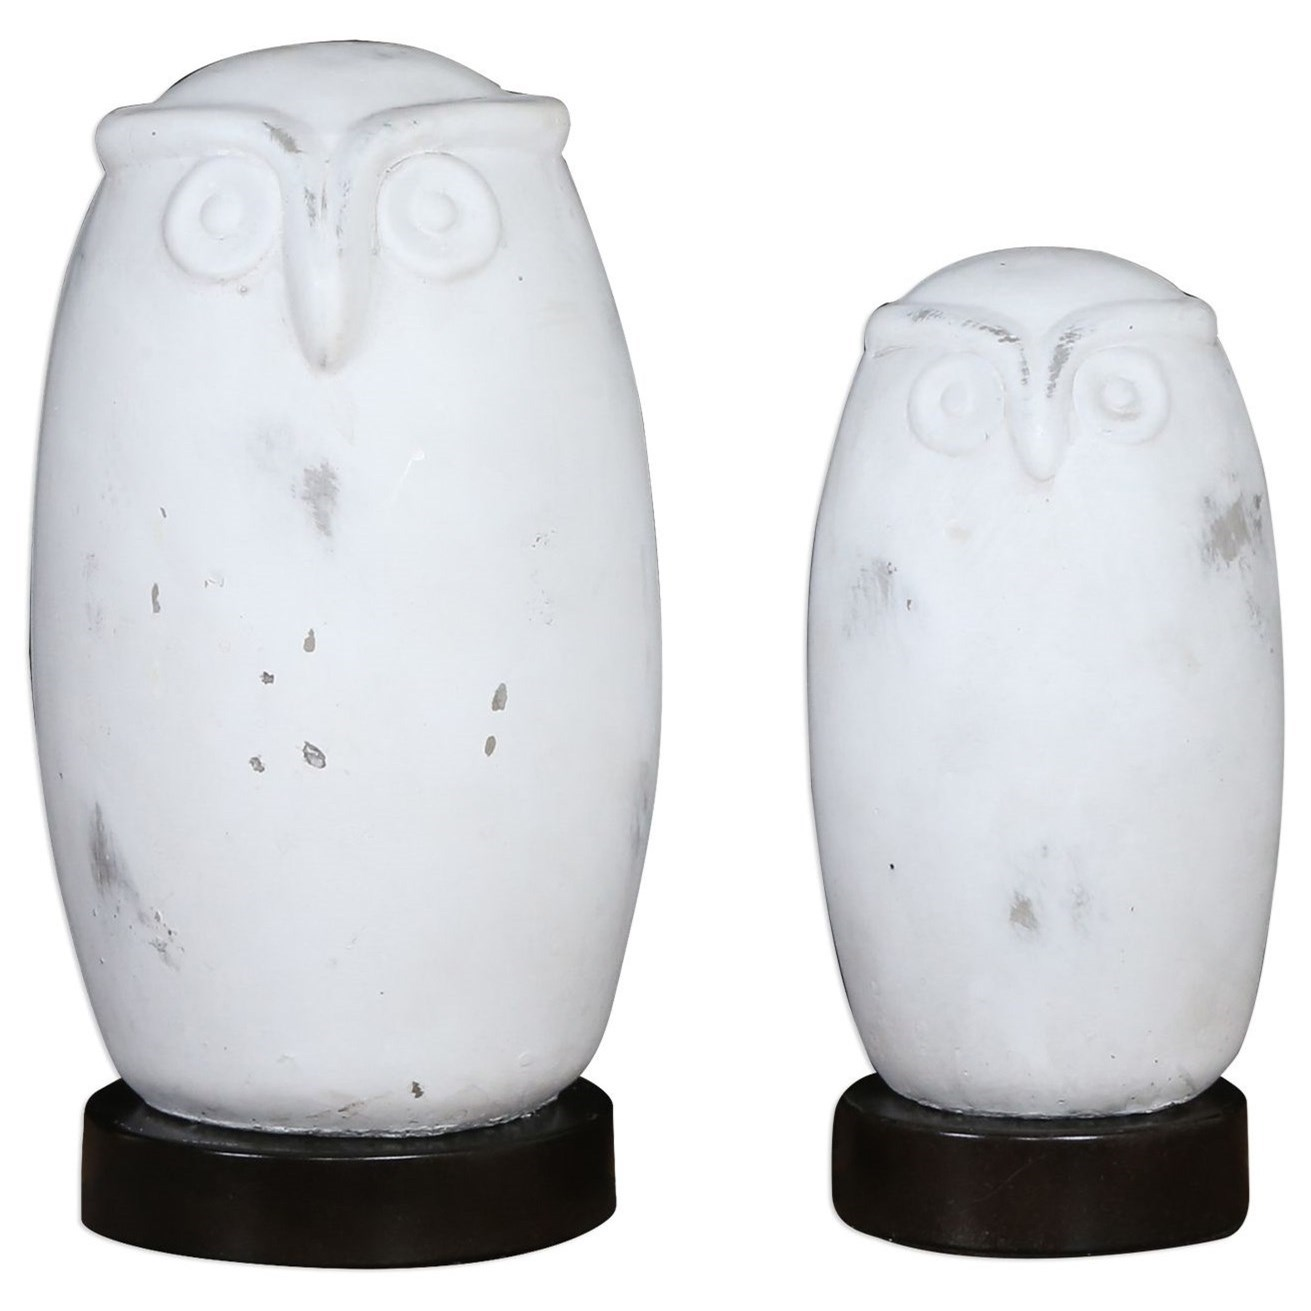 Accessories - Statues and Figurines Hoot Owl Figurines Set of 2 by Uttermost at Mueller Furniture